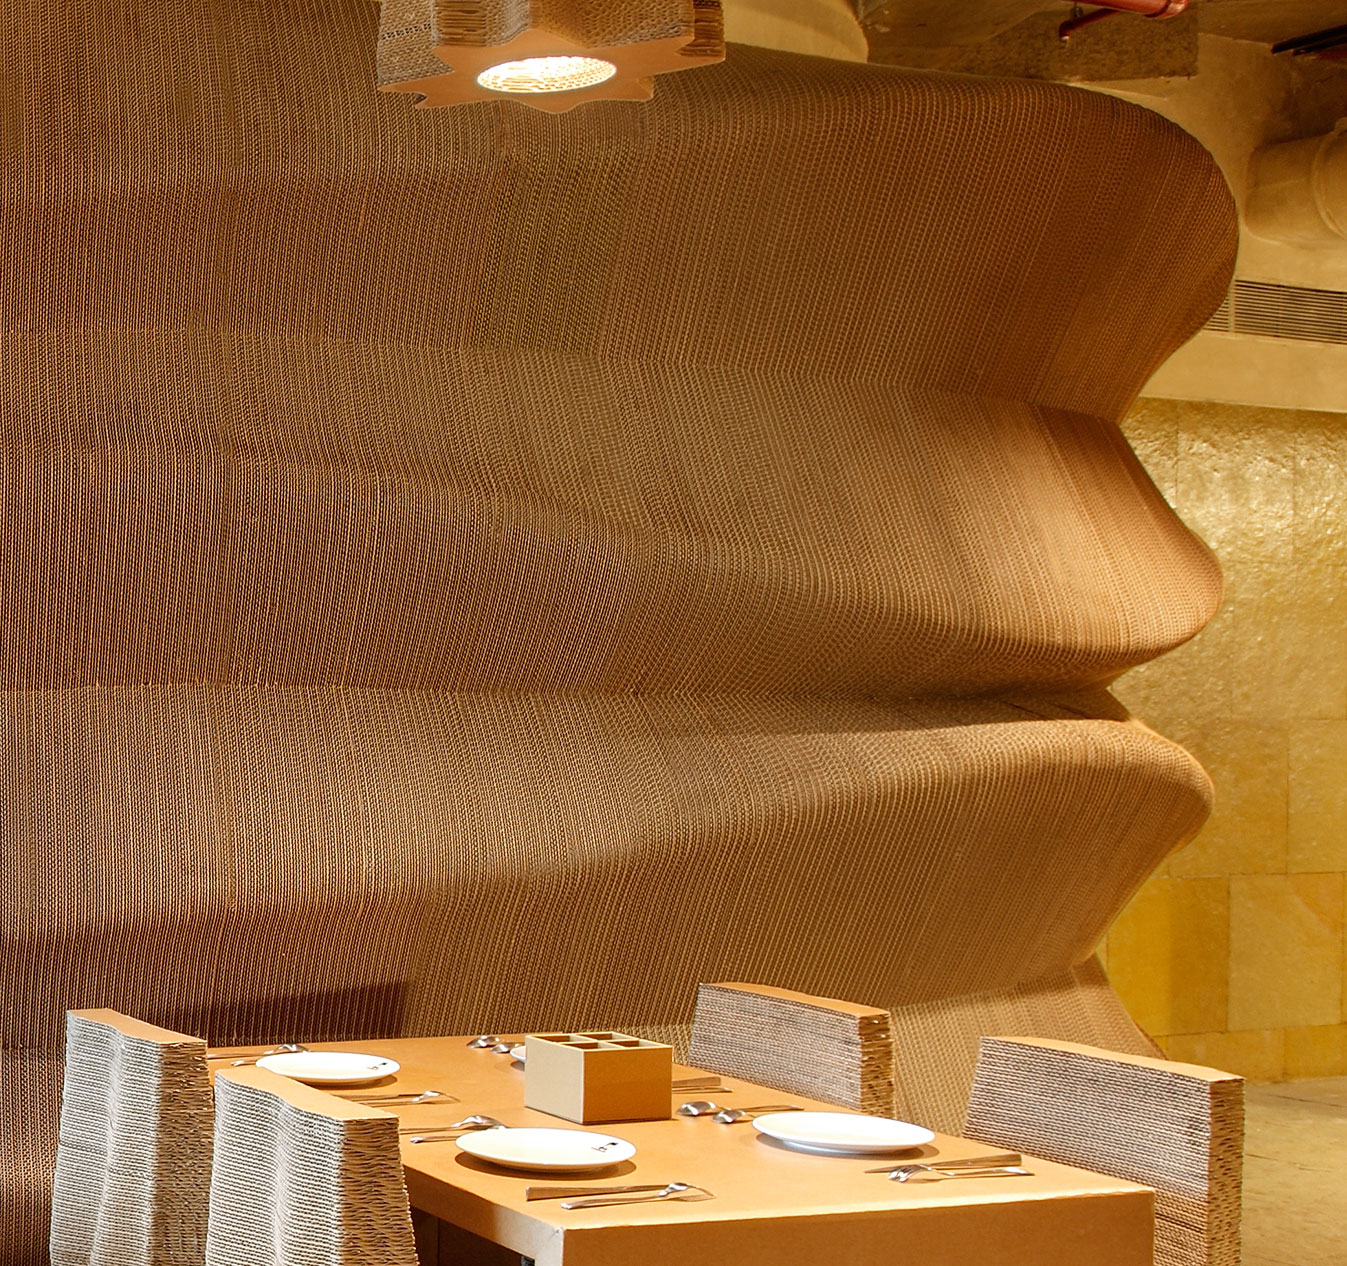 Enjoying the contours and textures of the corrugated material | Cardboard | Nudes | Nuru Karim | STIR